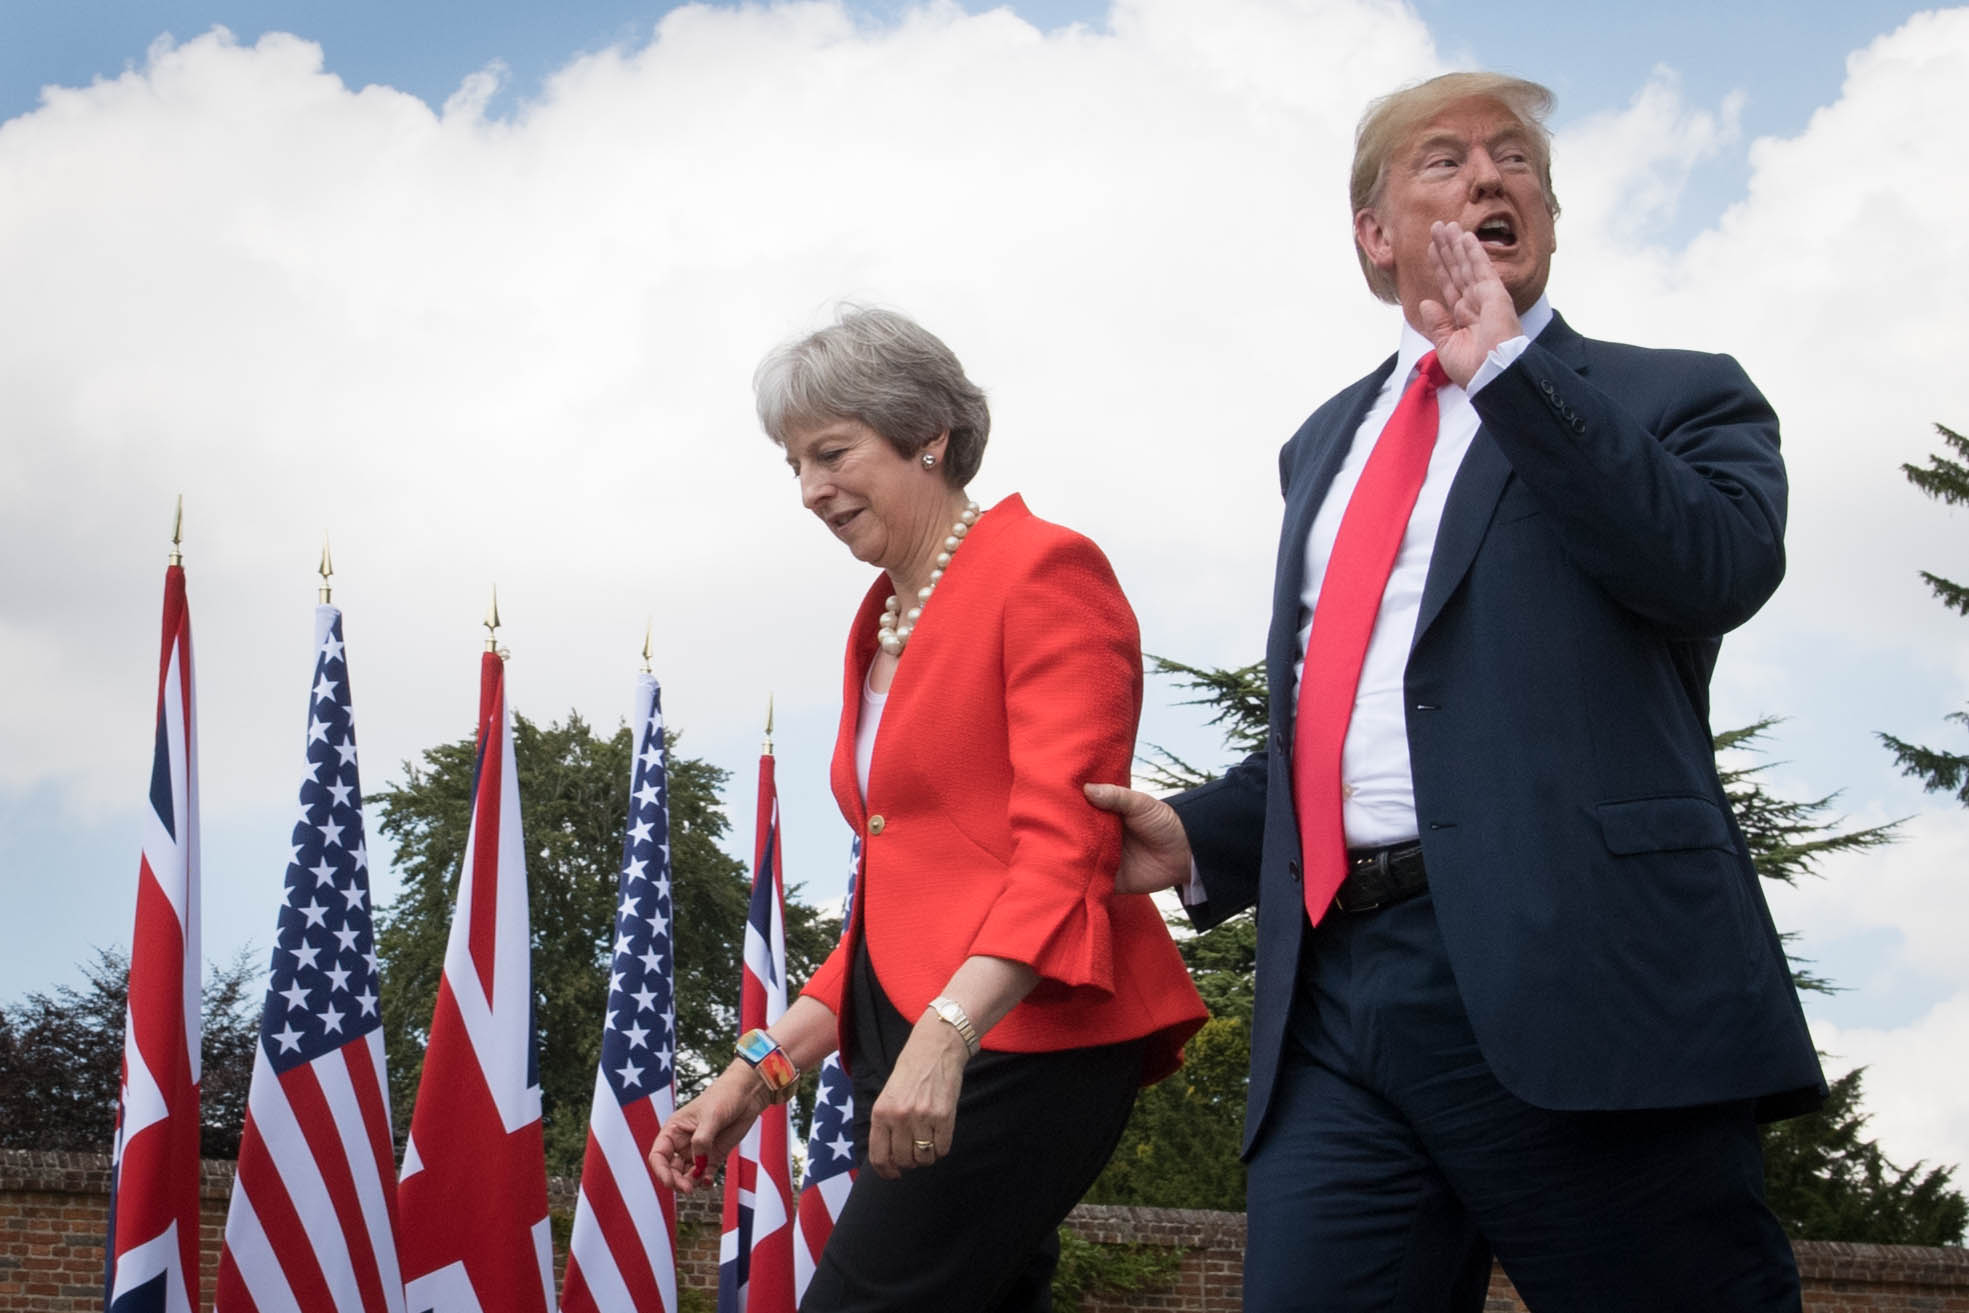 May presses Trump for post-Brexit trade deal with United States